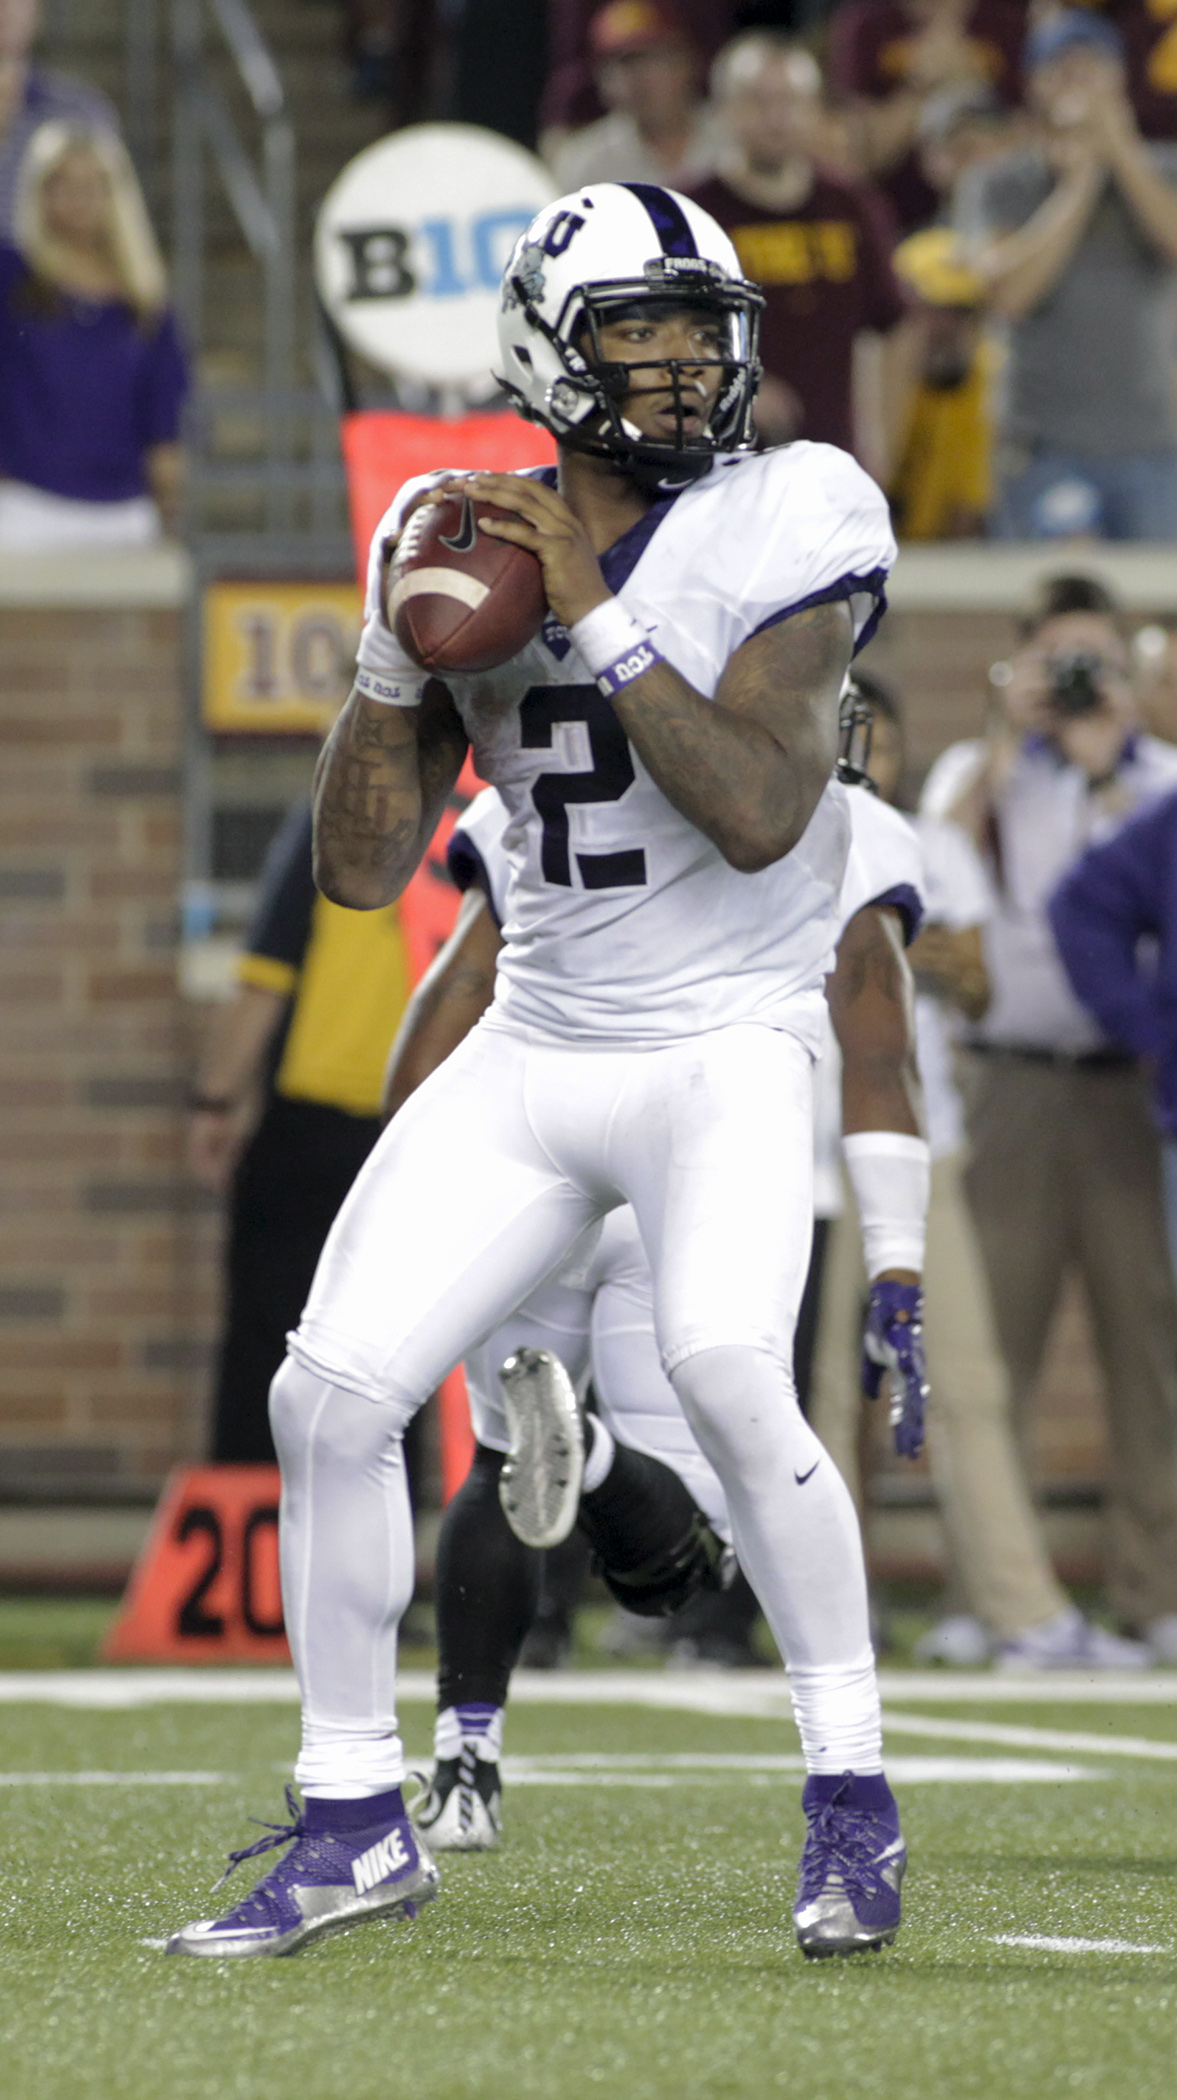 TCU quarterback Trevone Boykin (2) looks to pass during the first half of an NCAA college football game against Minnesota on Thursday, Sept. 3, 2015, in Minneapolis. (AP Photo/Paul Battaglia)